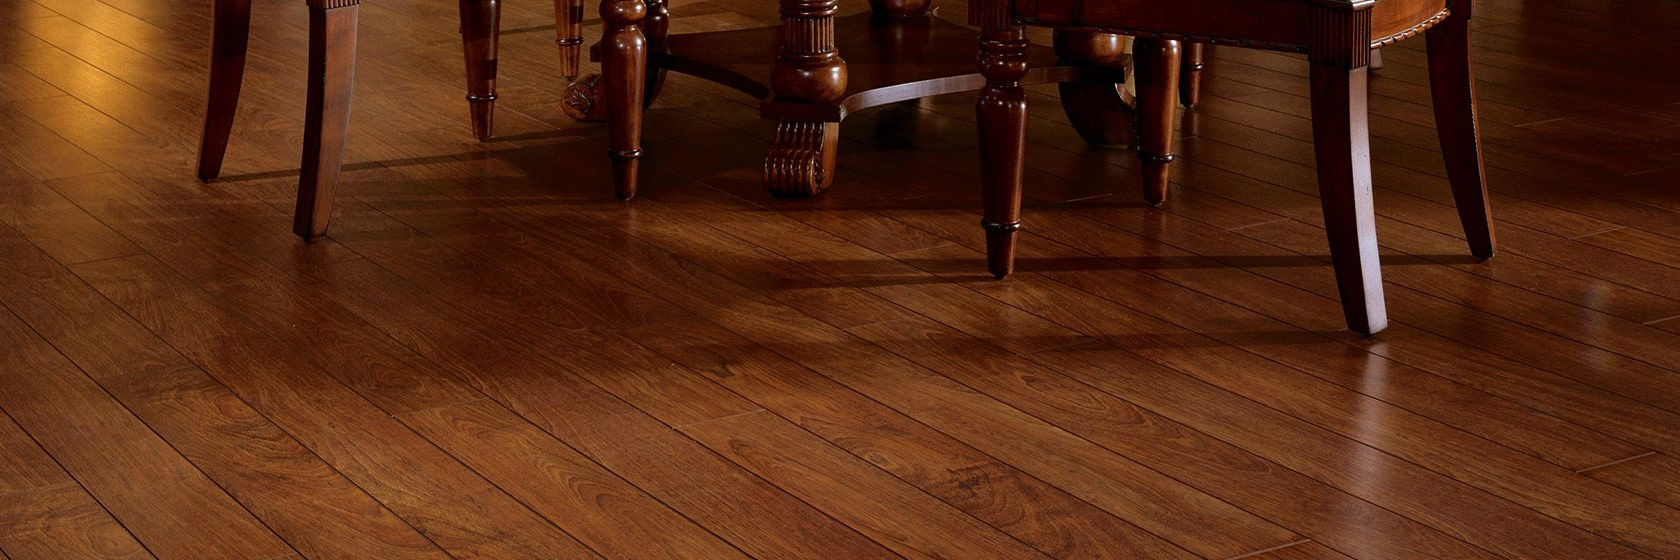 Bruce Engineered Hardwood Click Lock Flooring Of Laminate Exotic Olive ash L8708 Inside Hero L 1680 560